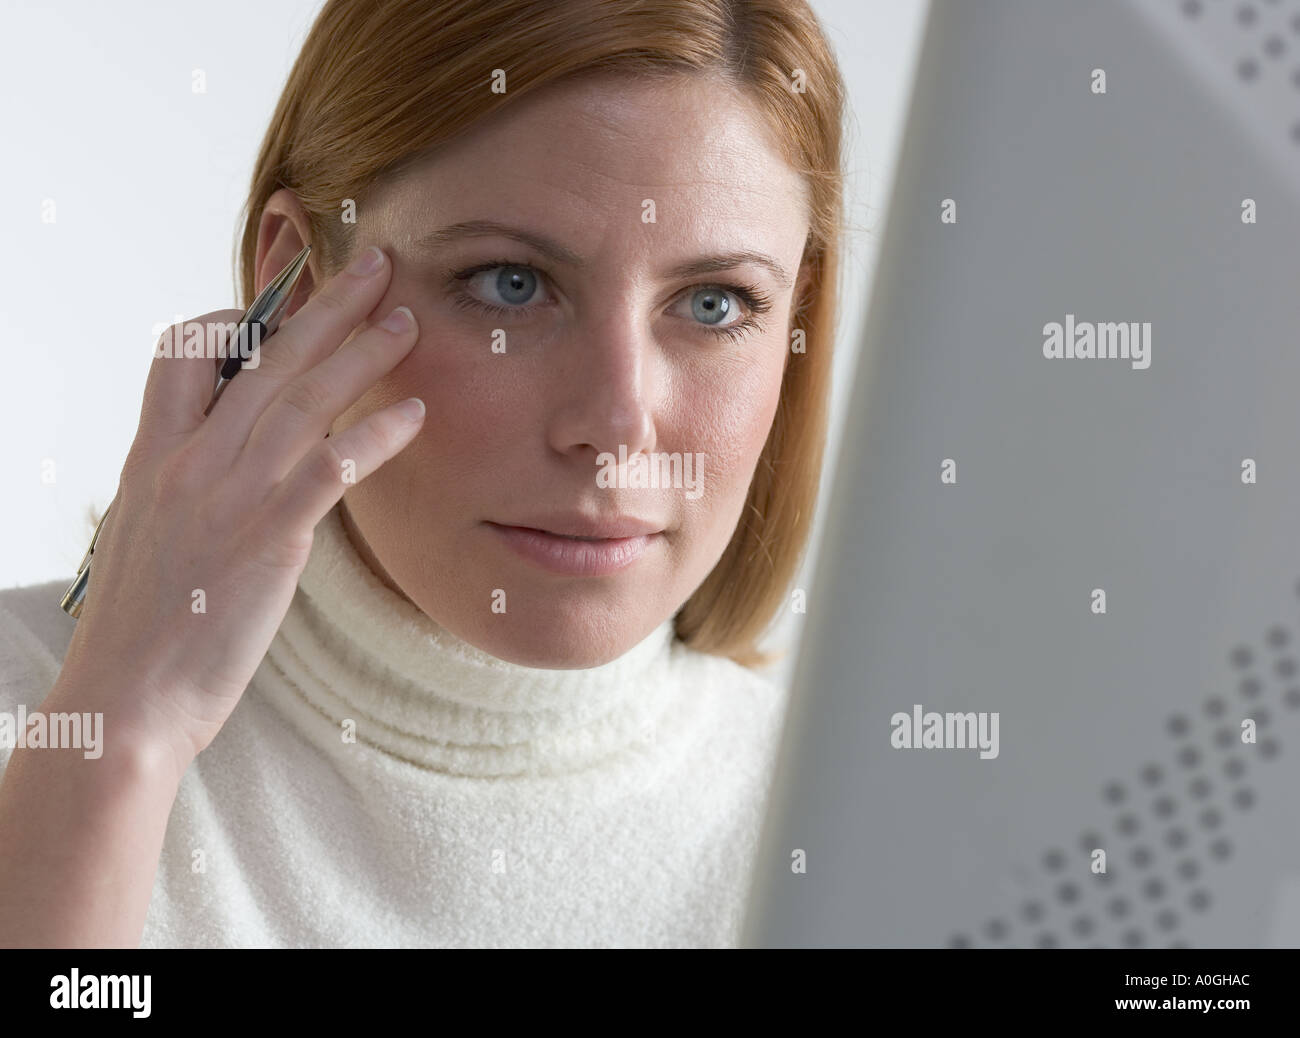 Woman focused on her computer - Stock Image